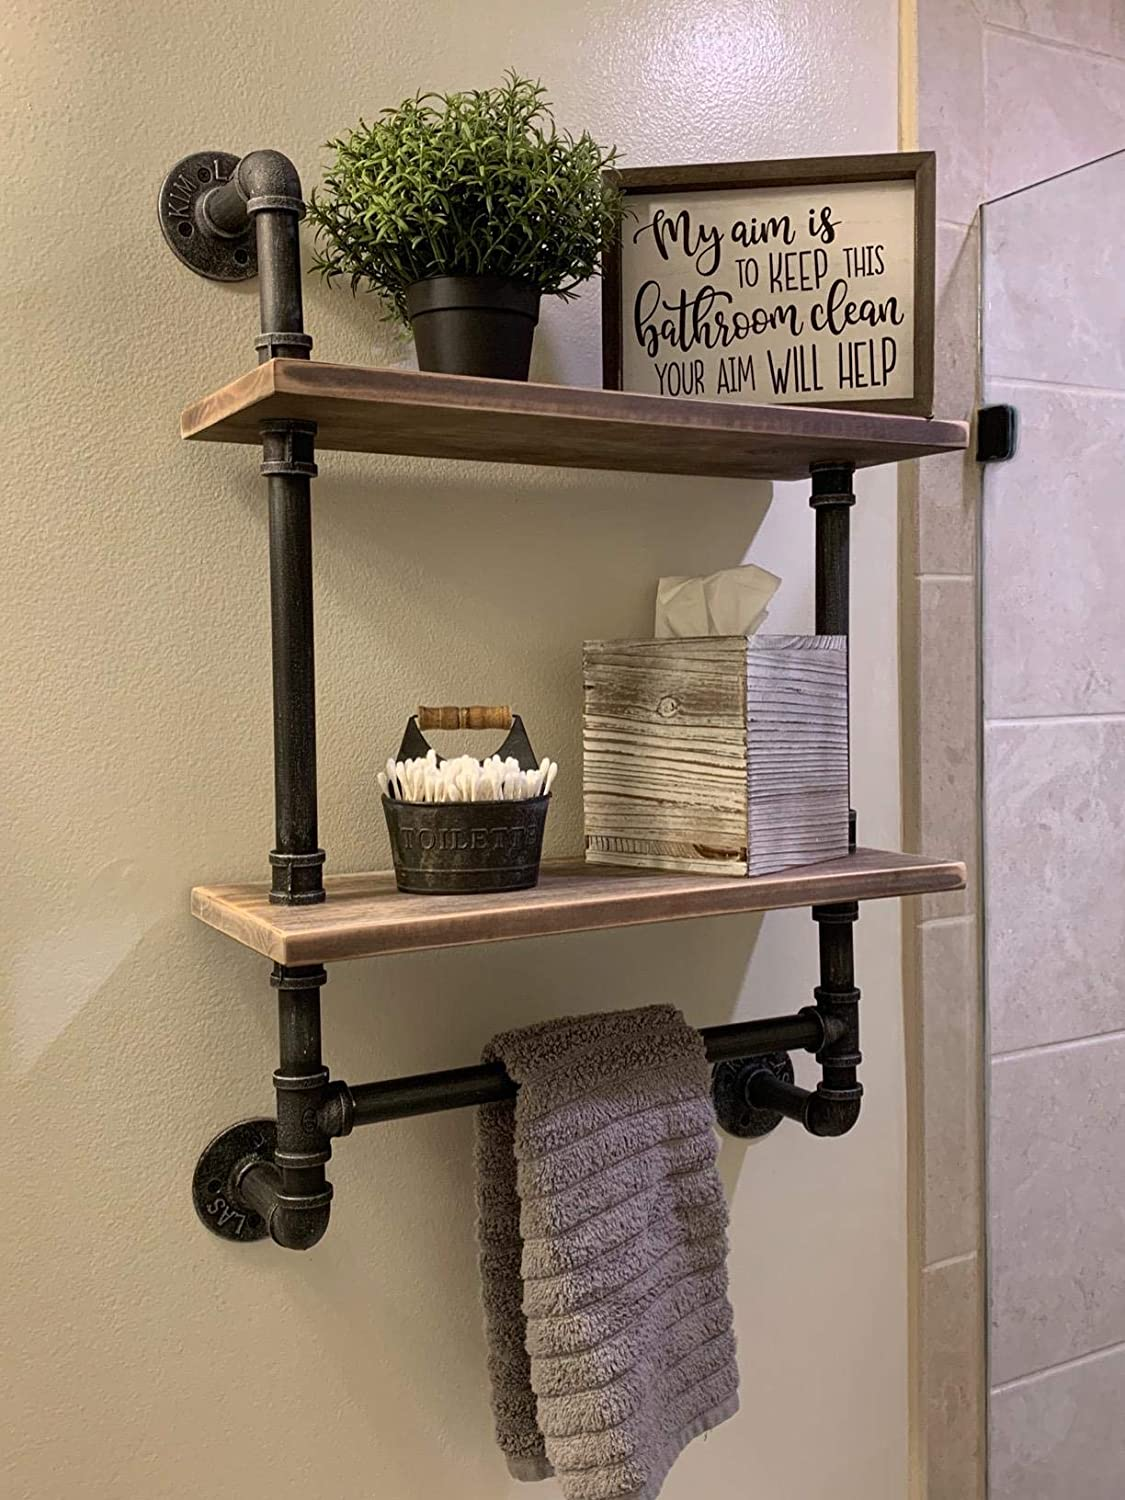 Amazon Com Industrial Pipe Bathroom Shelves Wall Mounted 2 Shelf Rustic Pipe Shelving Wood Shelf With Towel Bar Pipe Floating Shelves Towel Holder Kitchen Dining